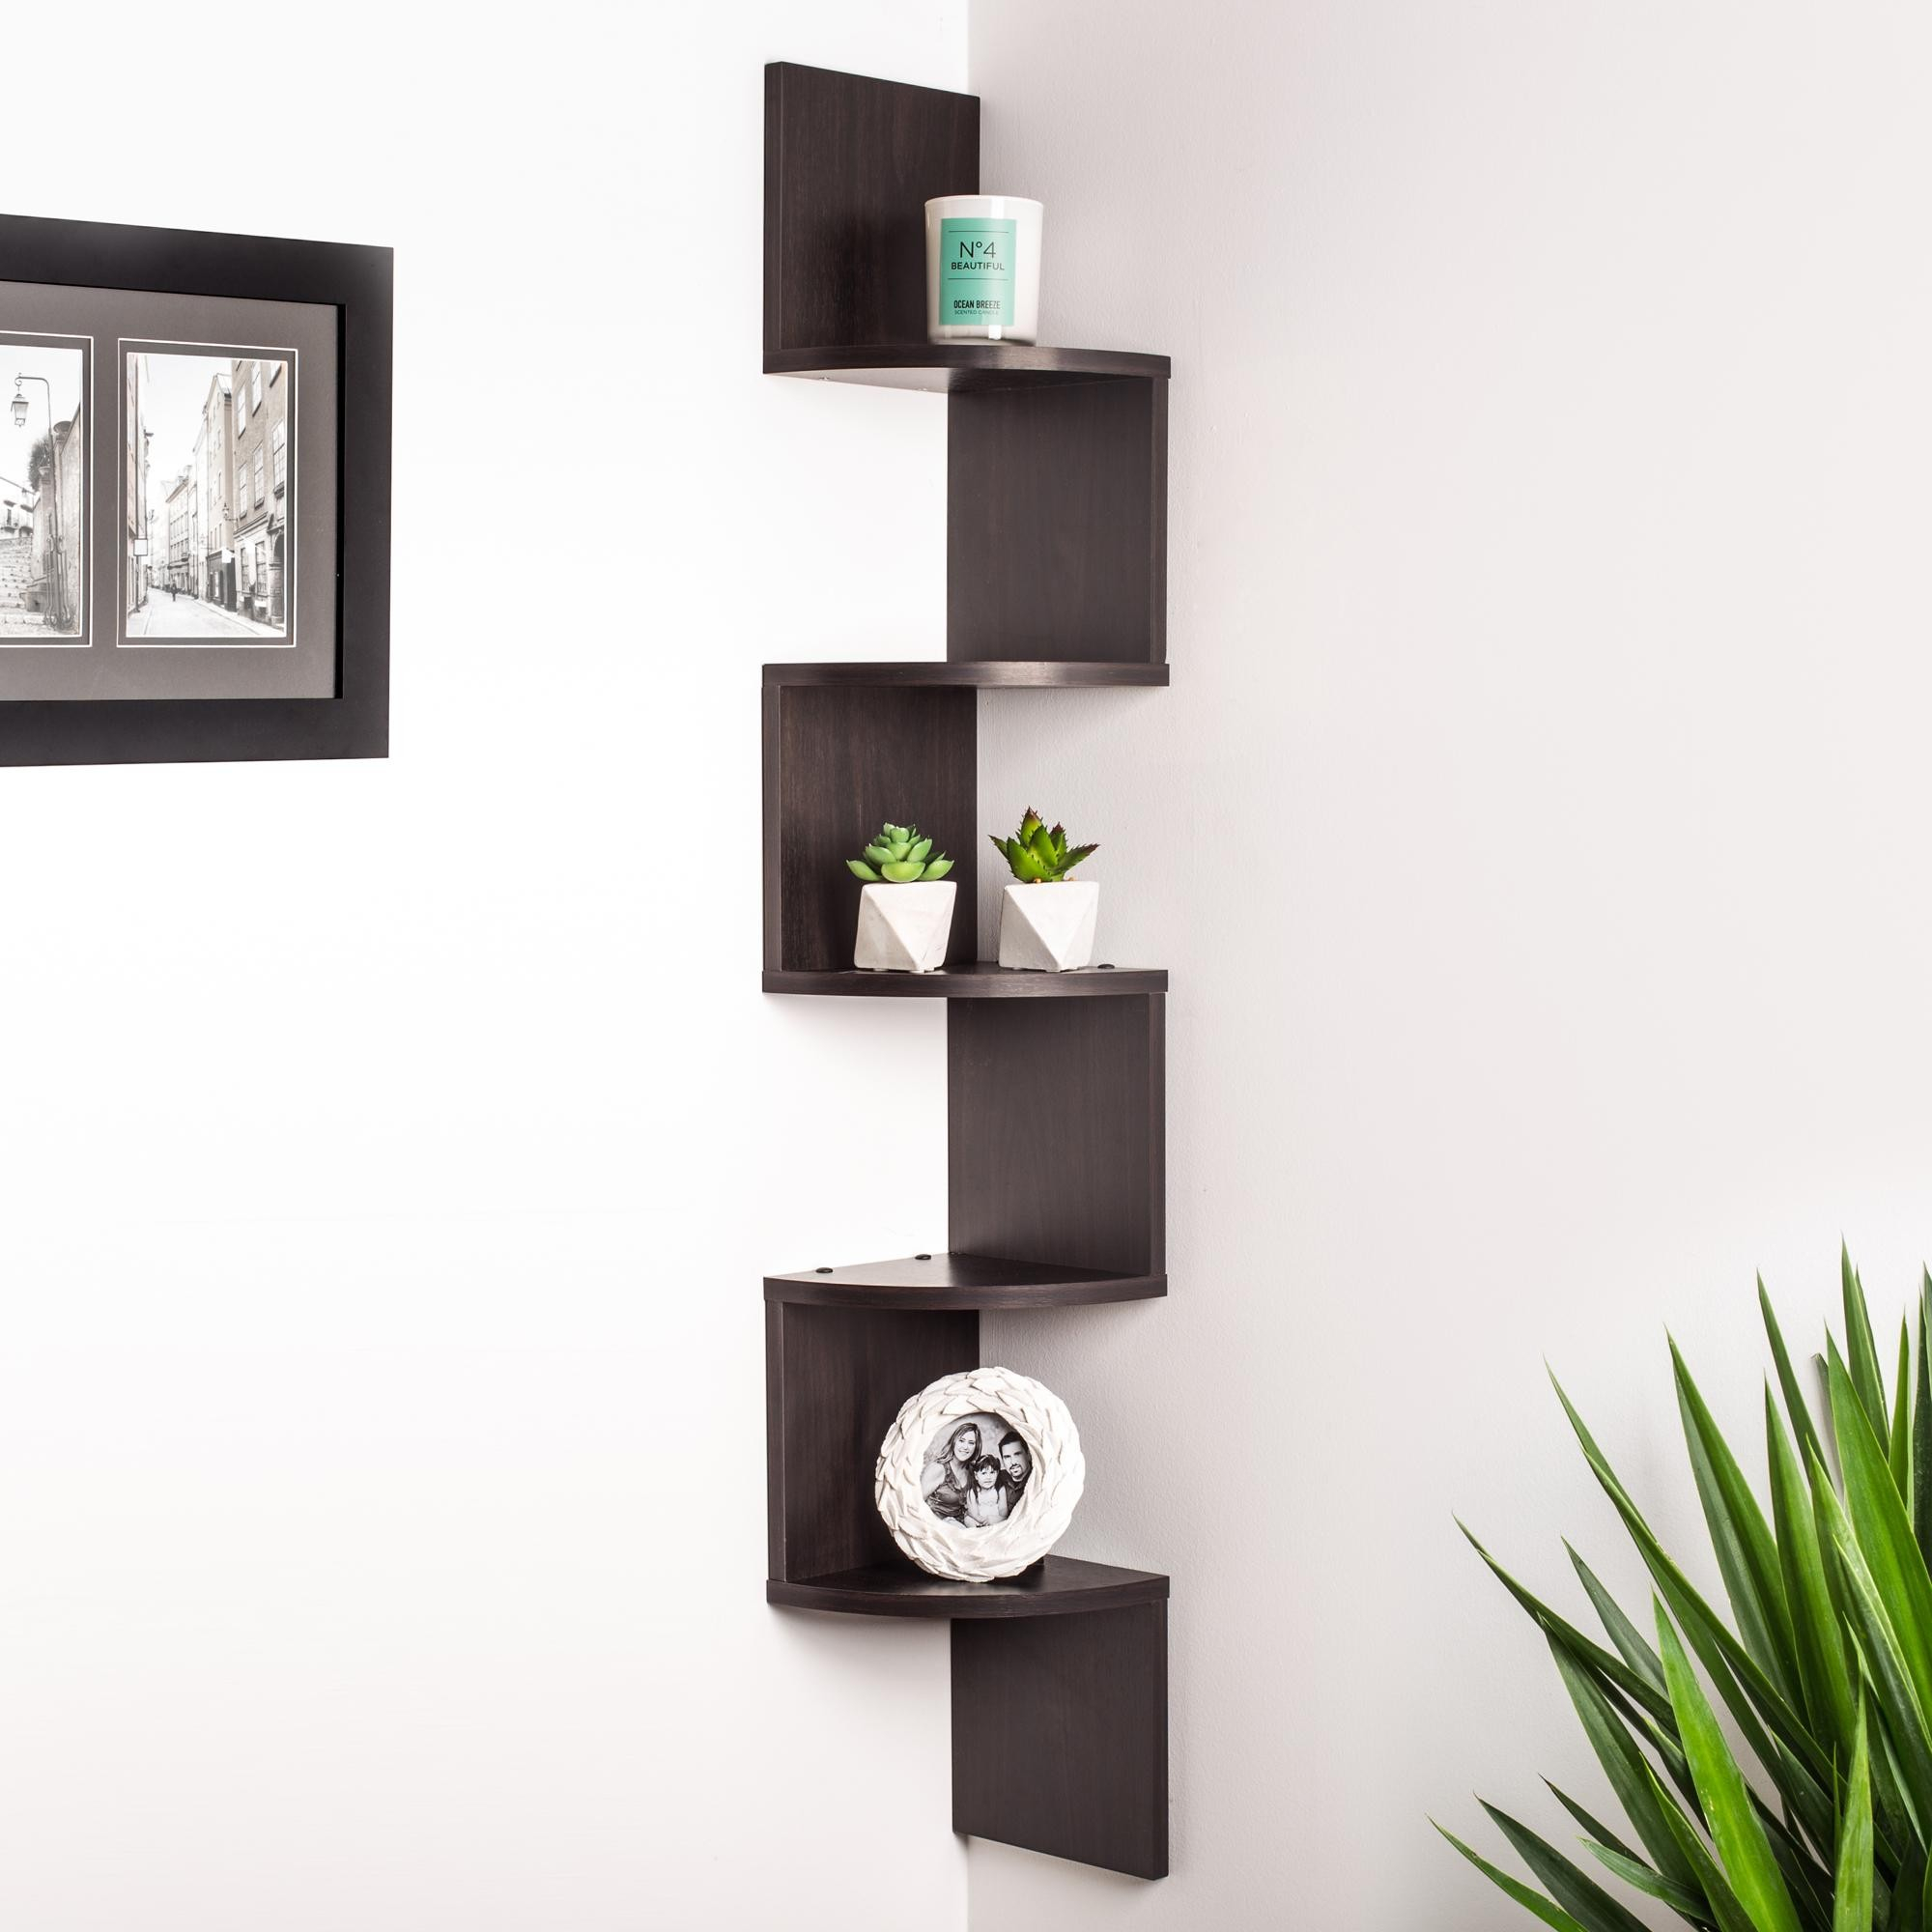 Amazing Dazzling Contemporary Wall Shelves 10 Bedroom Small Kitchen Buy in Corner Shelves For Living Room